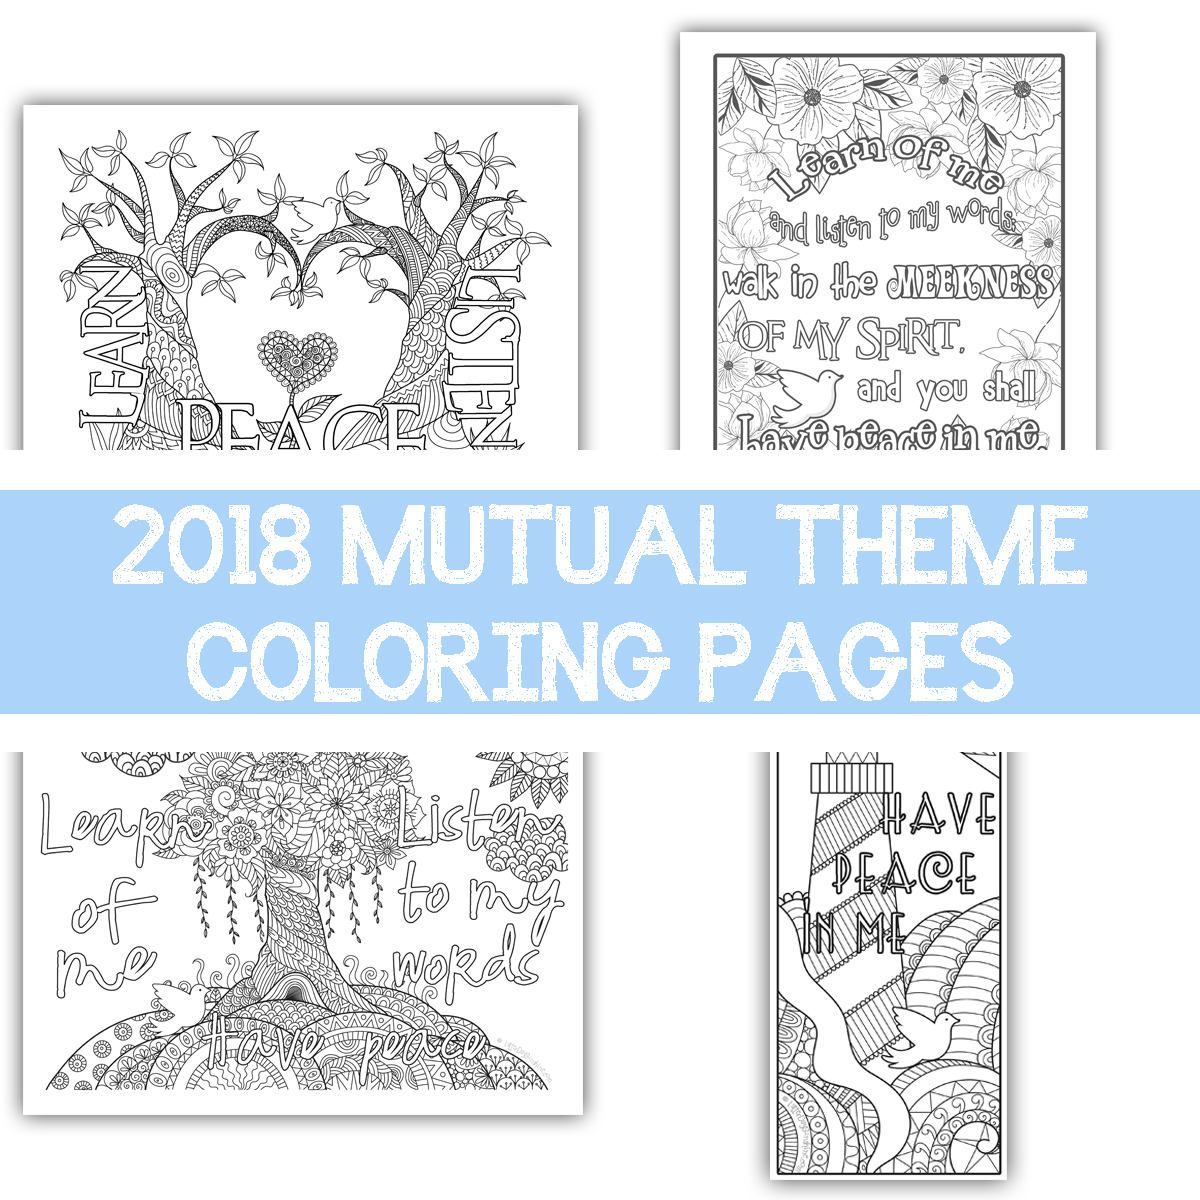 Package of all four 2018 Mutual Theme Coloring Pages ...